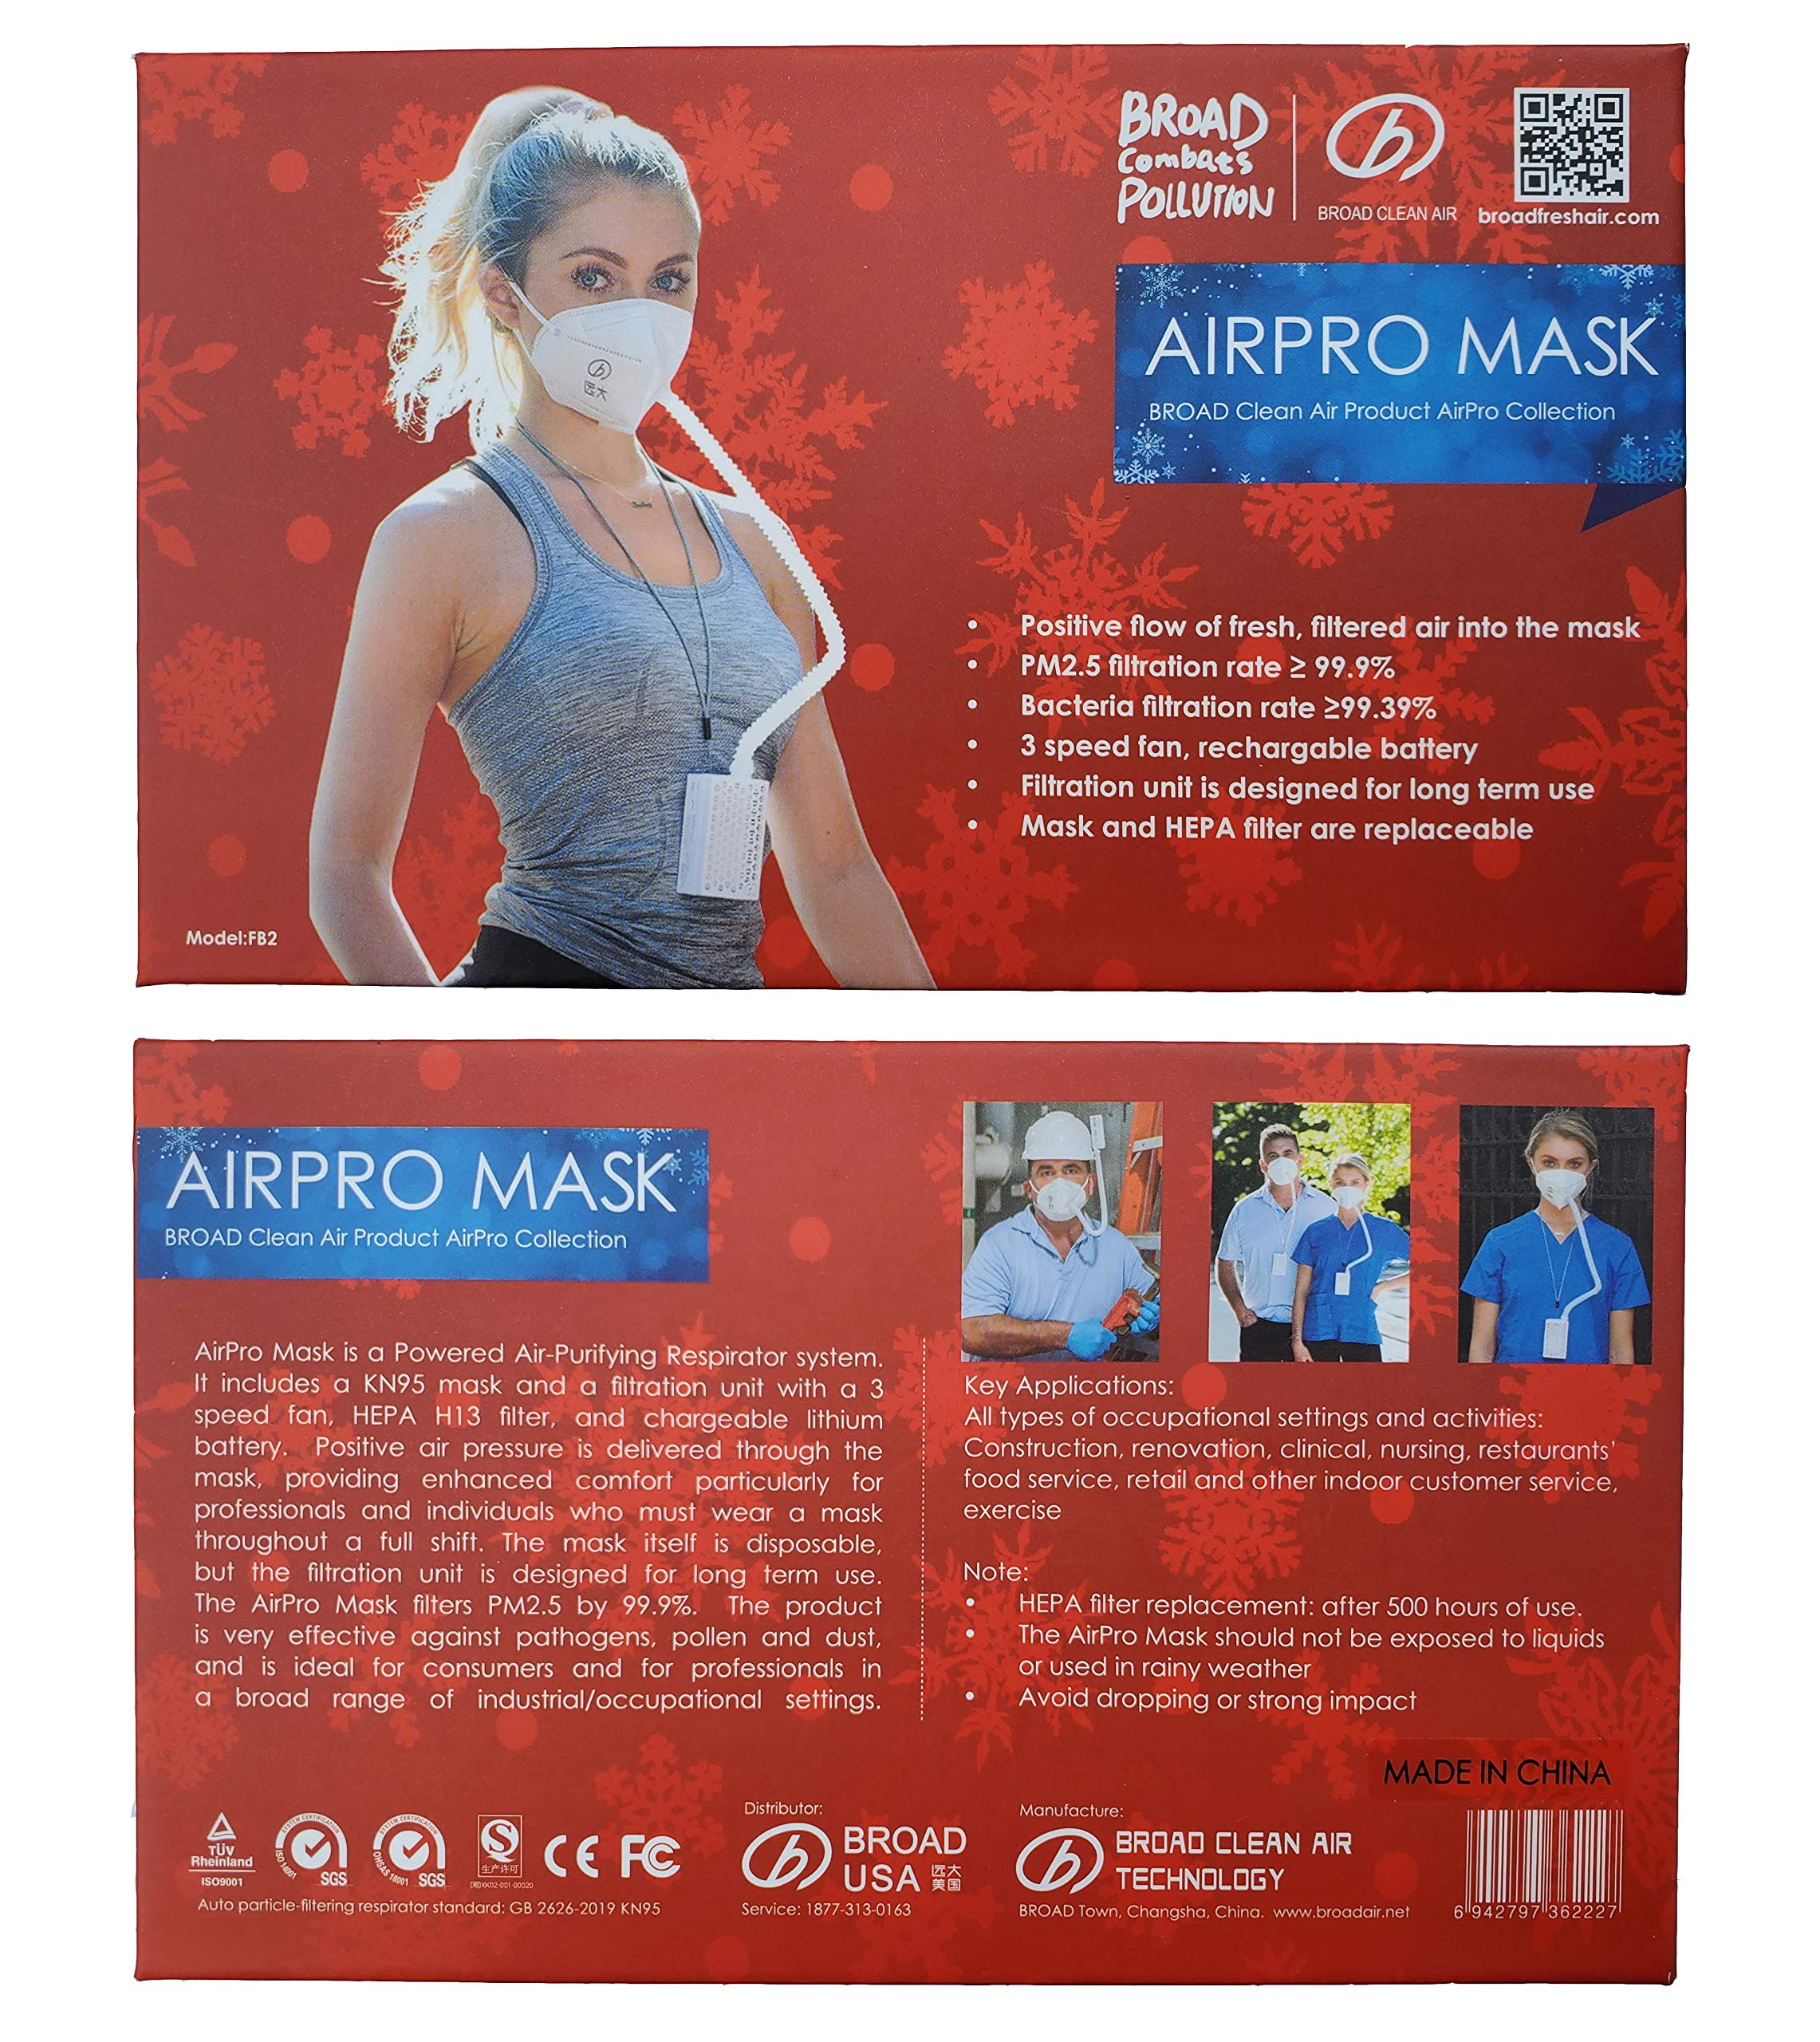 BROAD AirPro Mask Rechargeable Electrical Air Purifying Respirator, Reusable Portable Air Purifier with H13 HEPA Filter